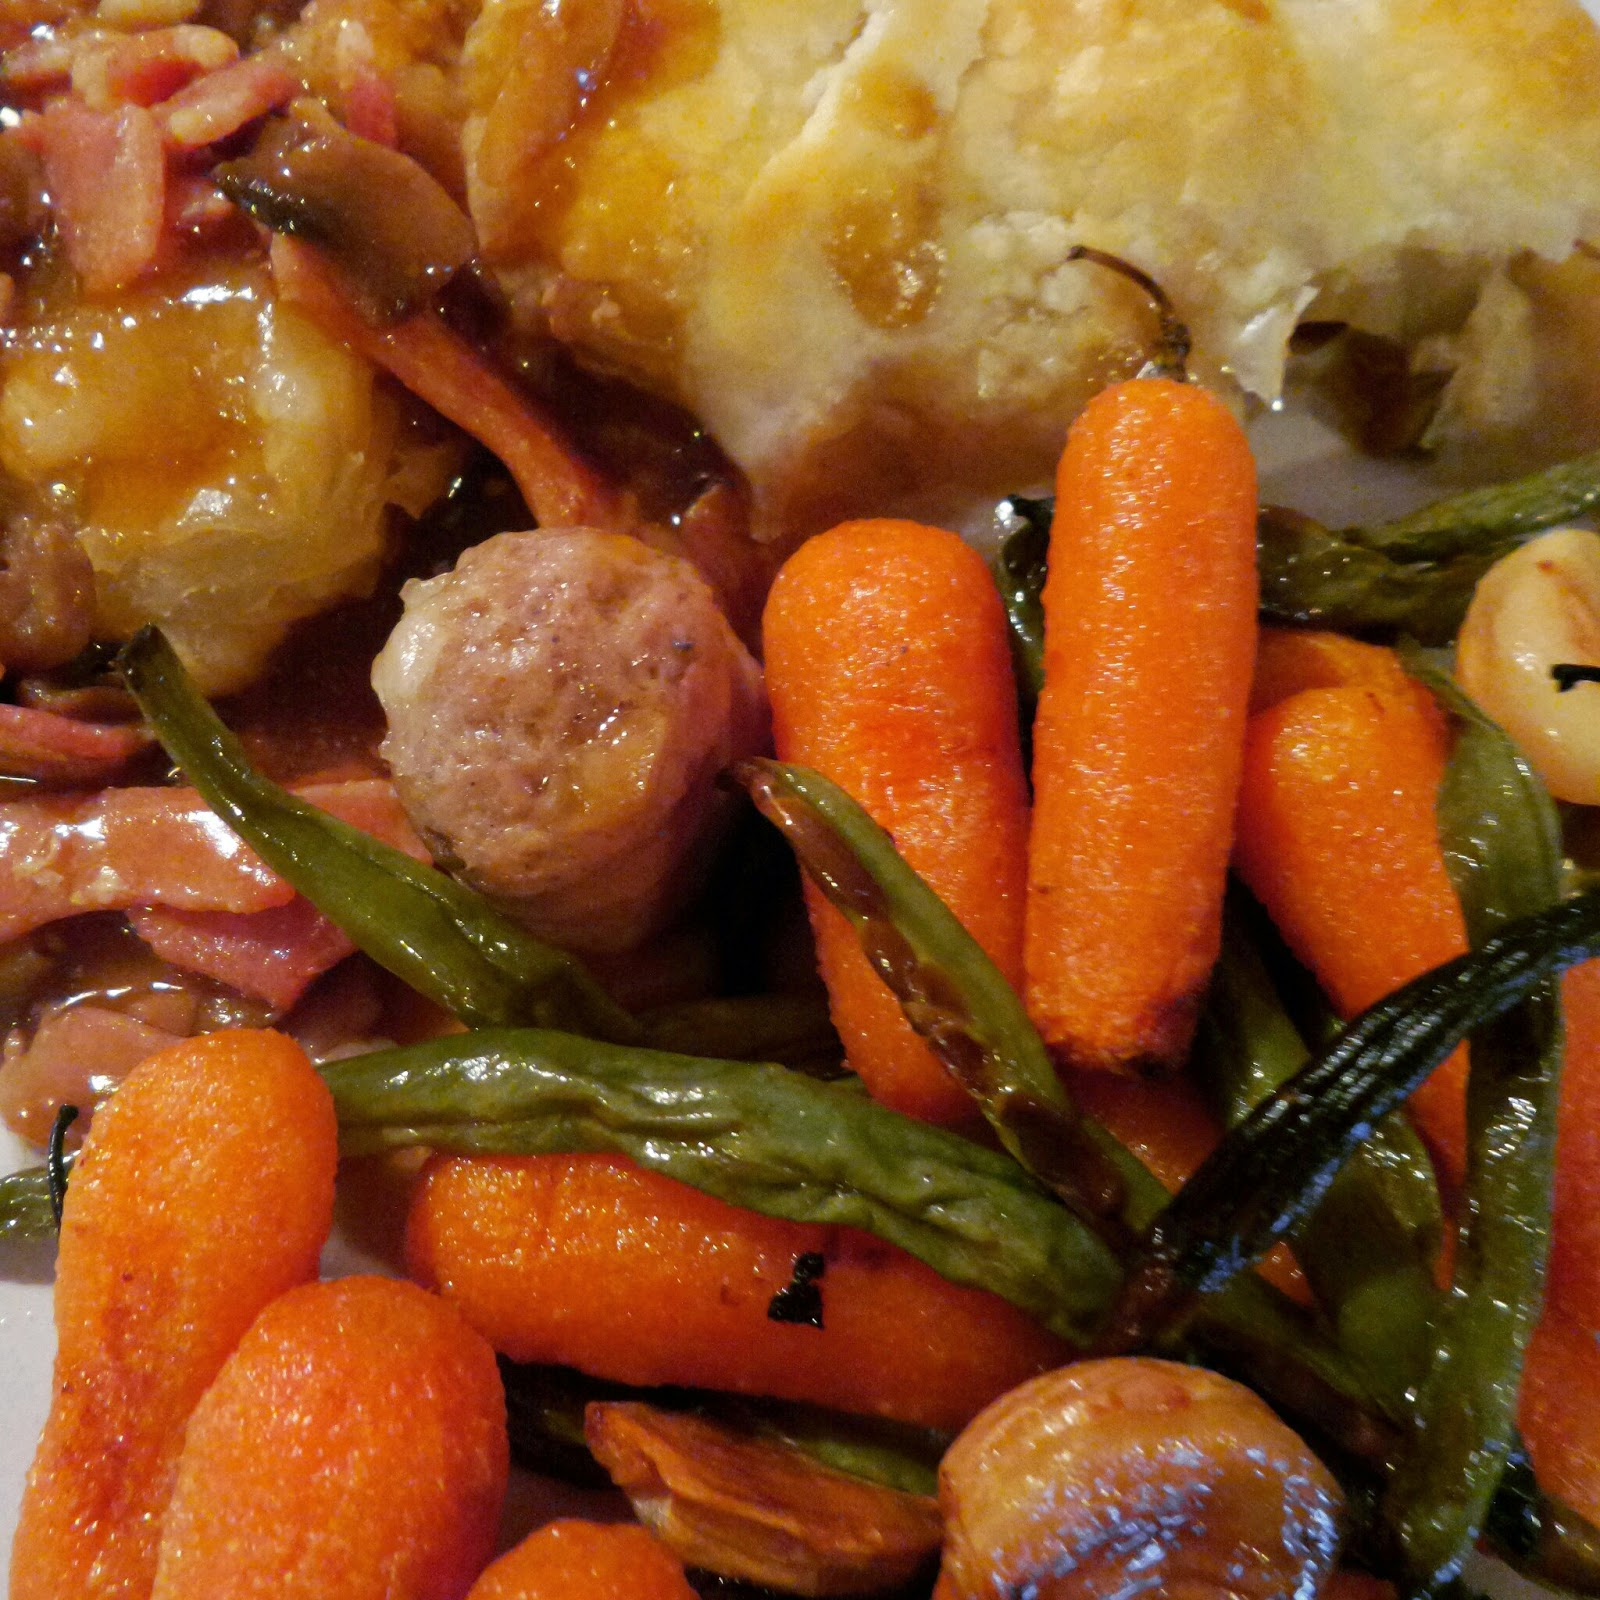 Sausage Pie with Carrots and Green Beans